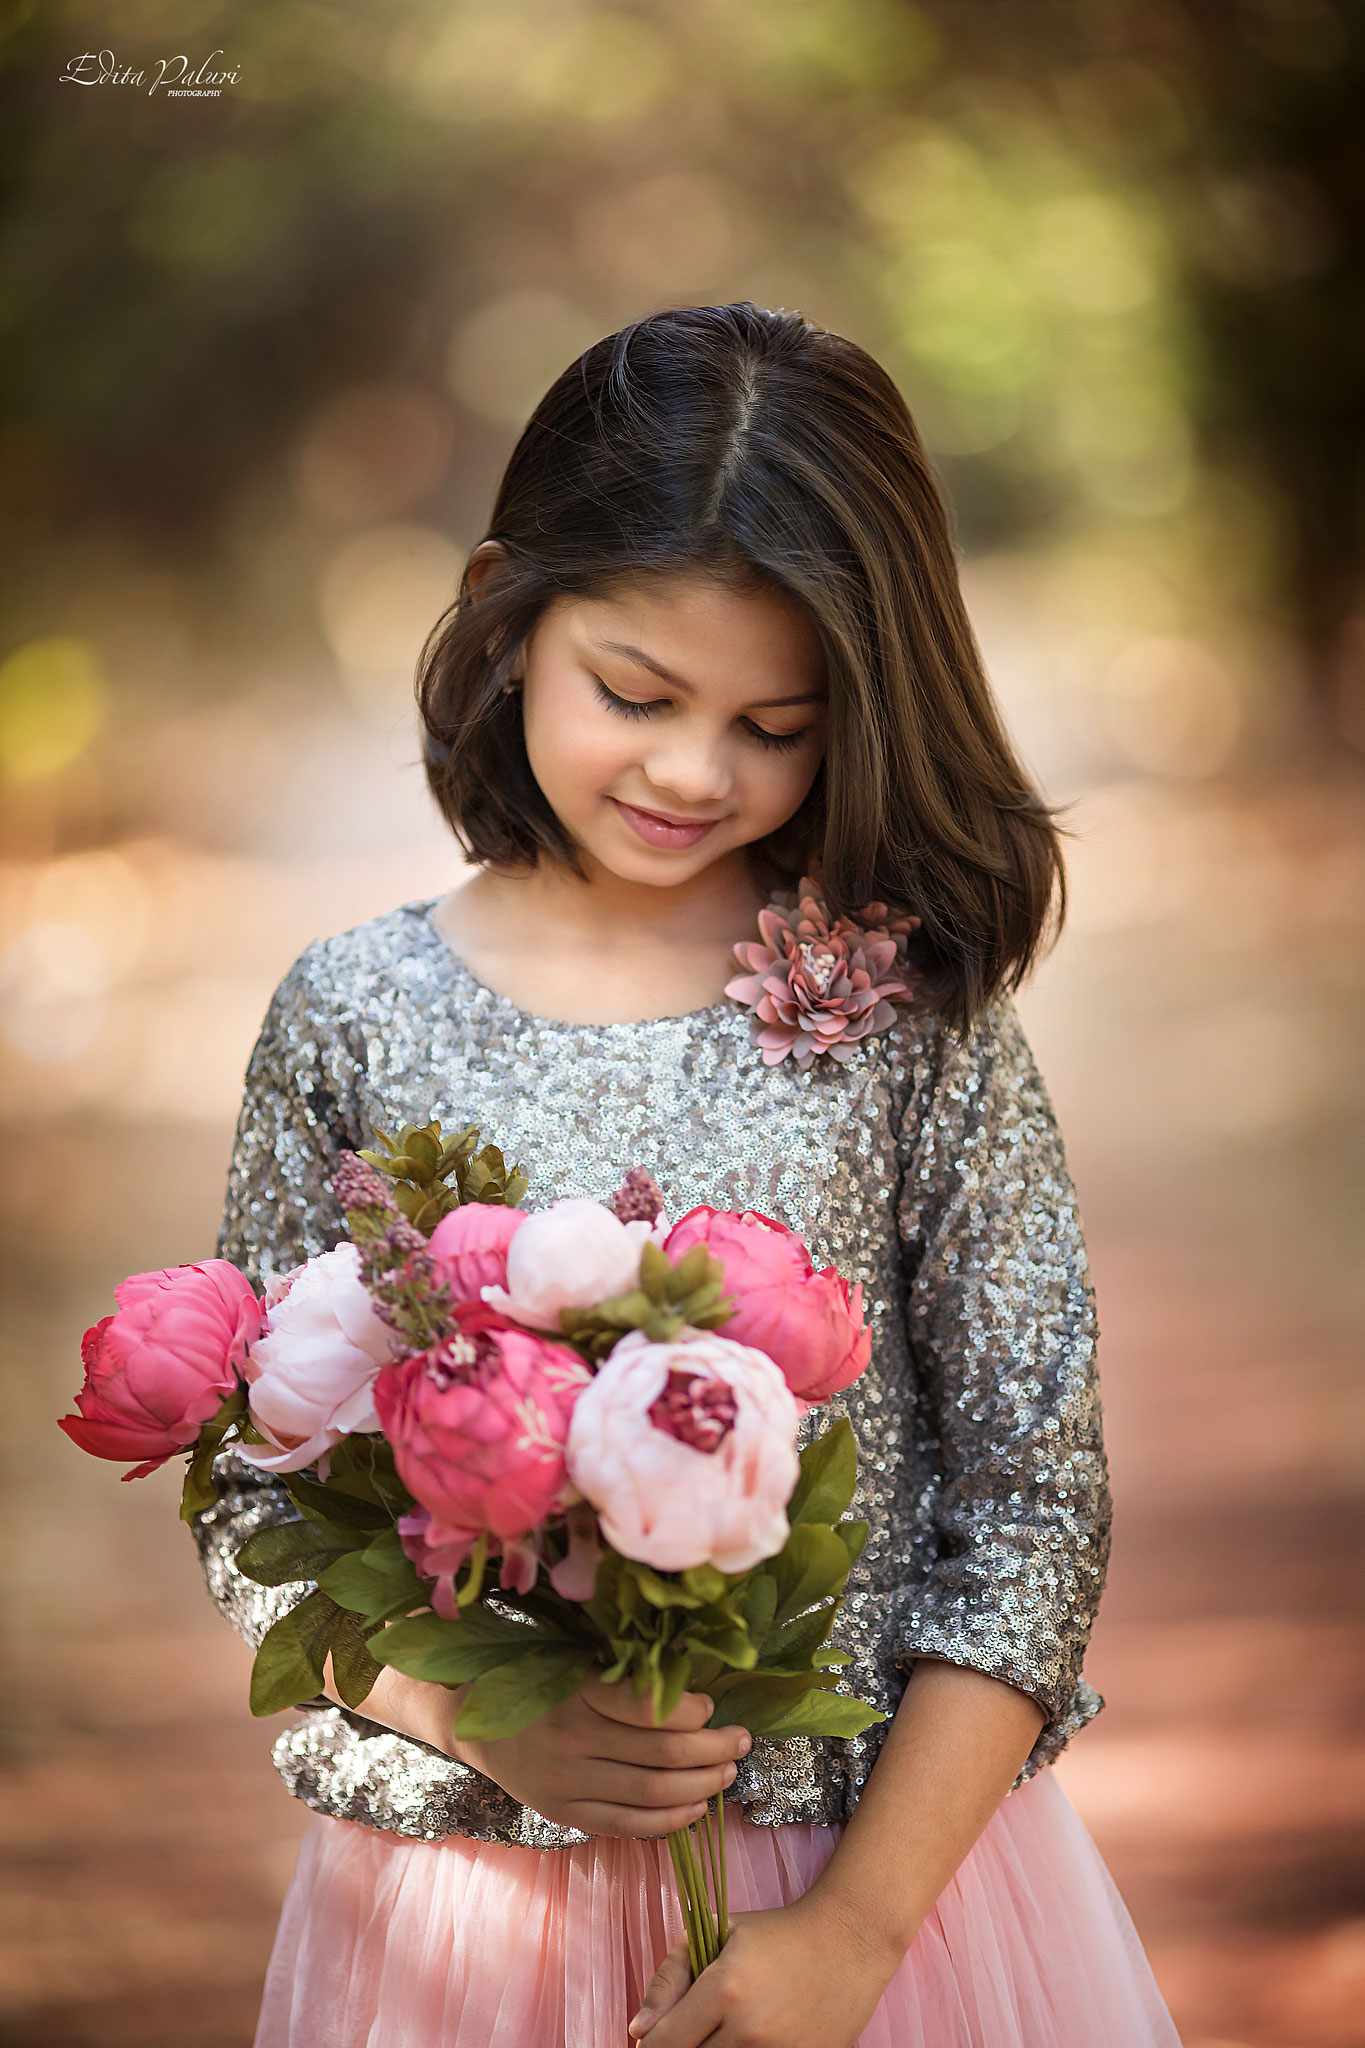 beautiful 8 year old girl photo session - child